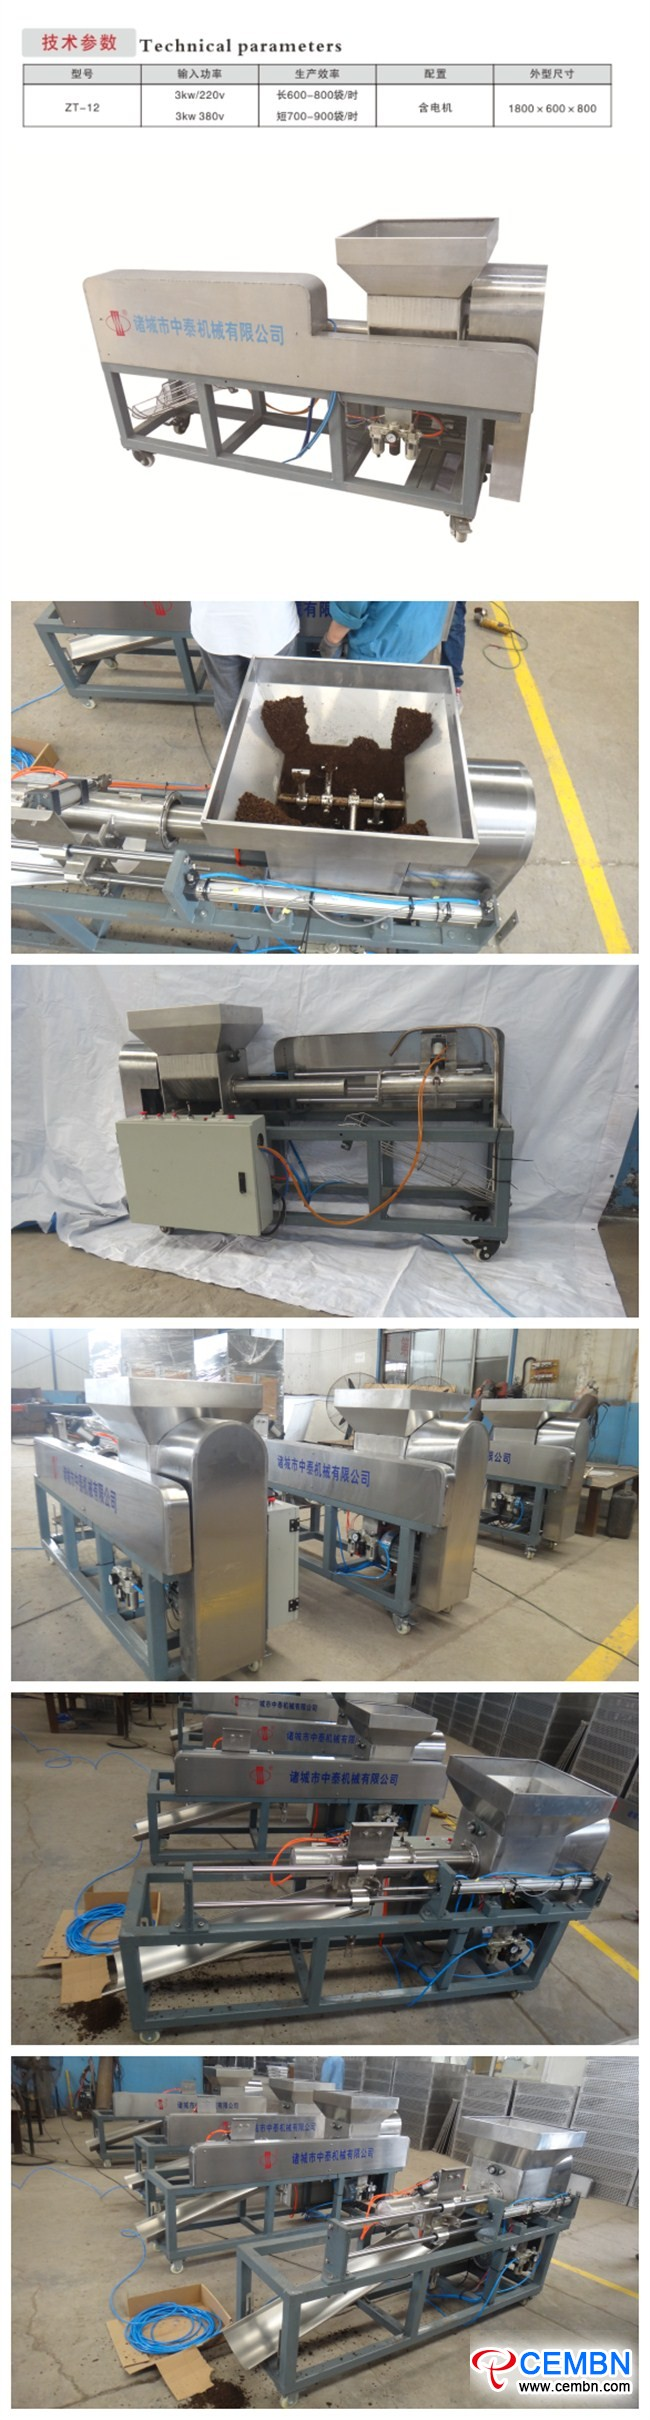 Edible fungus pungus pneumatic horizontai packing machine